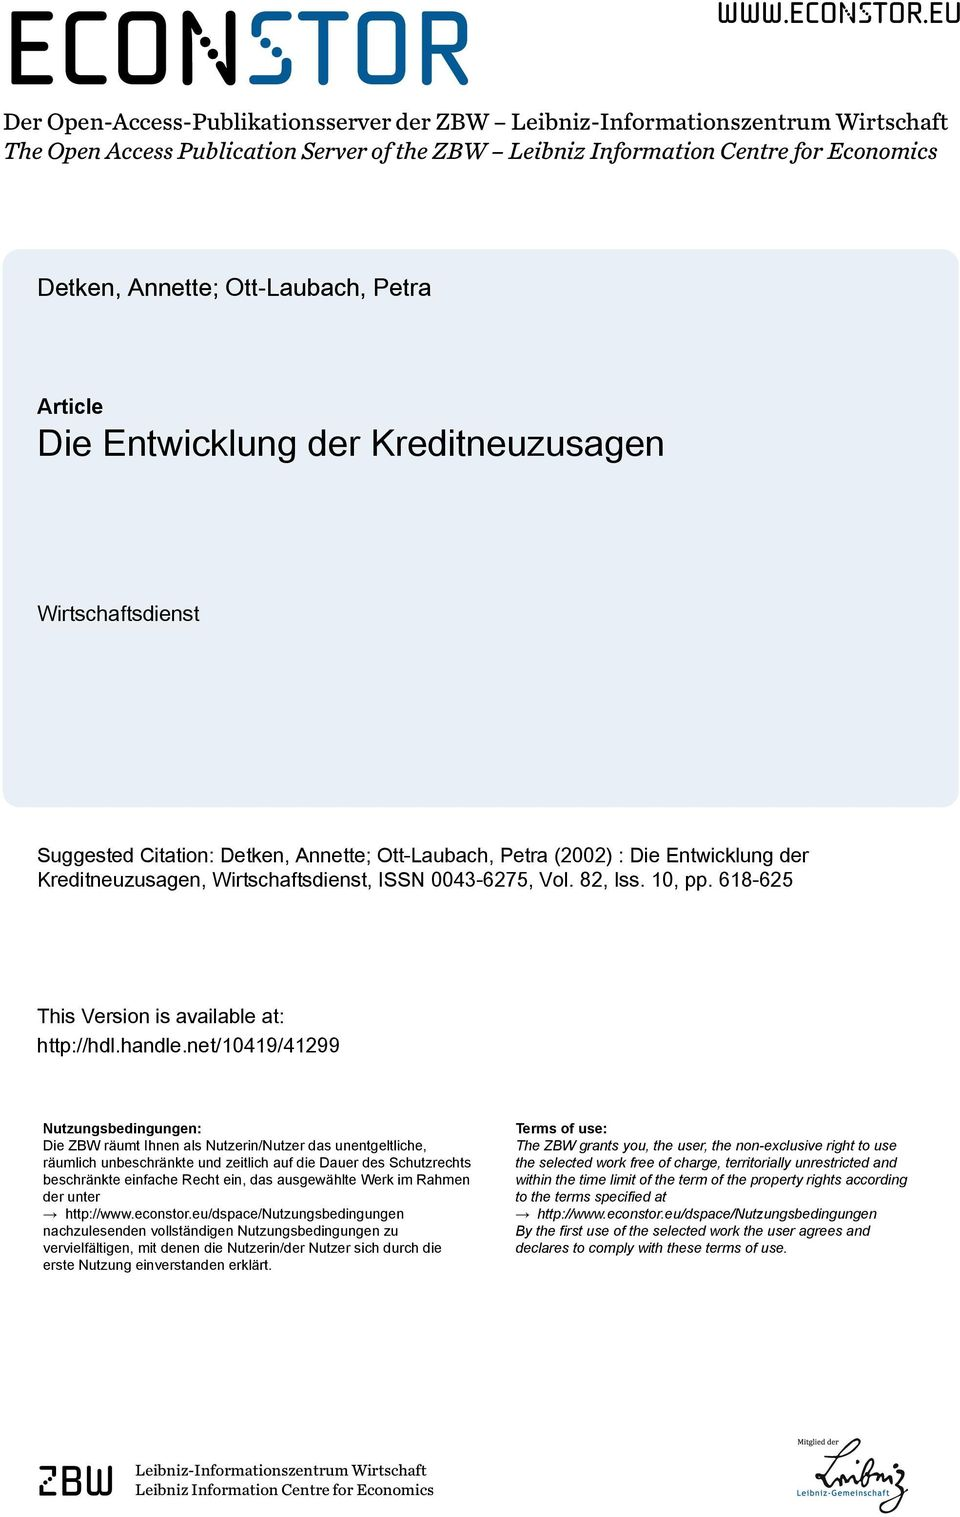 eu Der Open-Access-Publikationsserver der ZBW Leibniz-Informationszentrum Wirtschaft The Open Access Publication Server of the ZBW Leibniz Information Centre for Economics Detken, Annette;